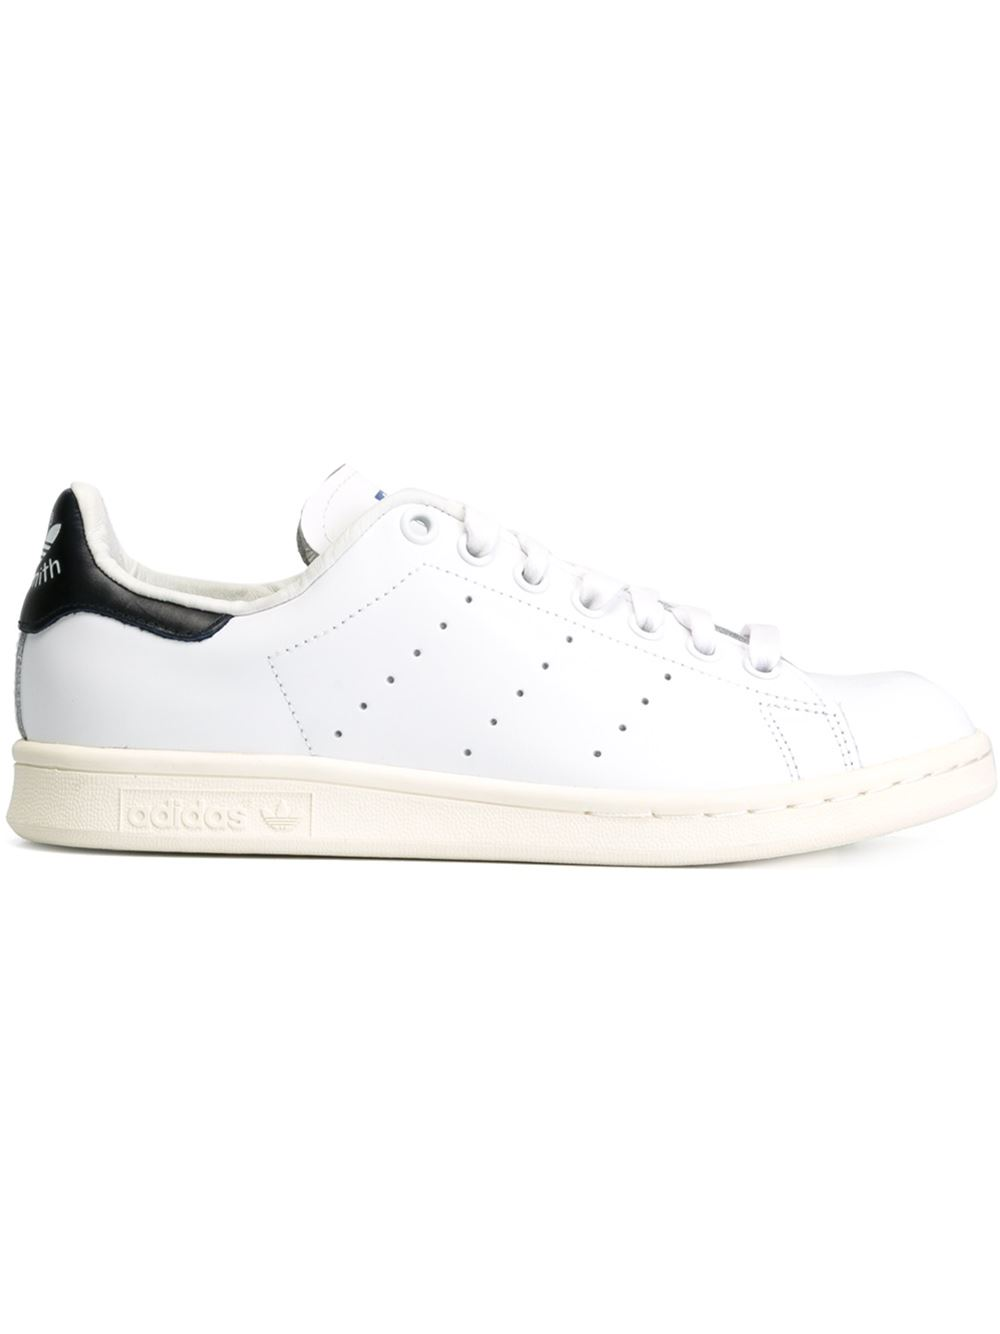 Adidas Originals 'Stan Smith' sneakers • $68.09 • Farfetch